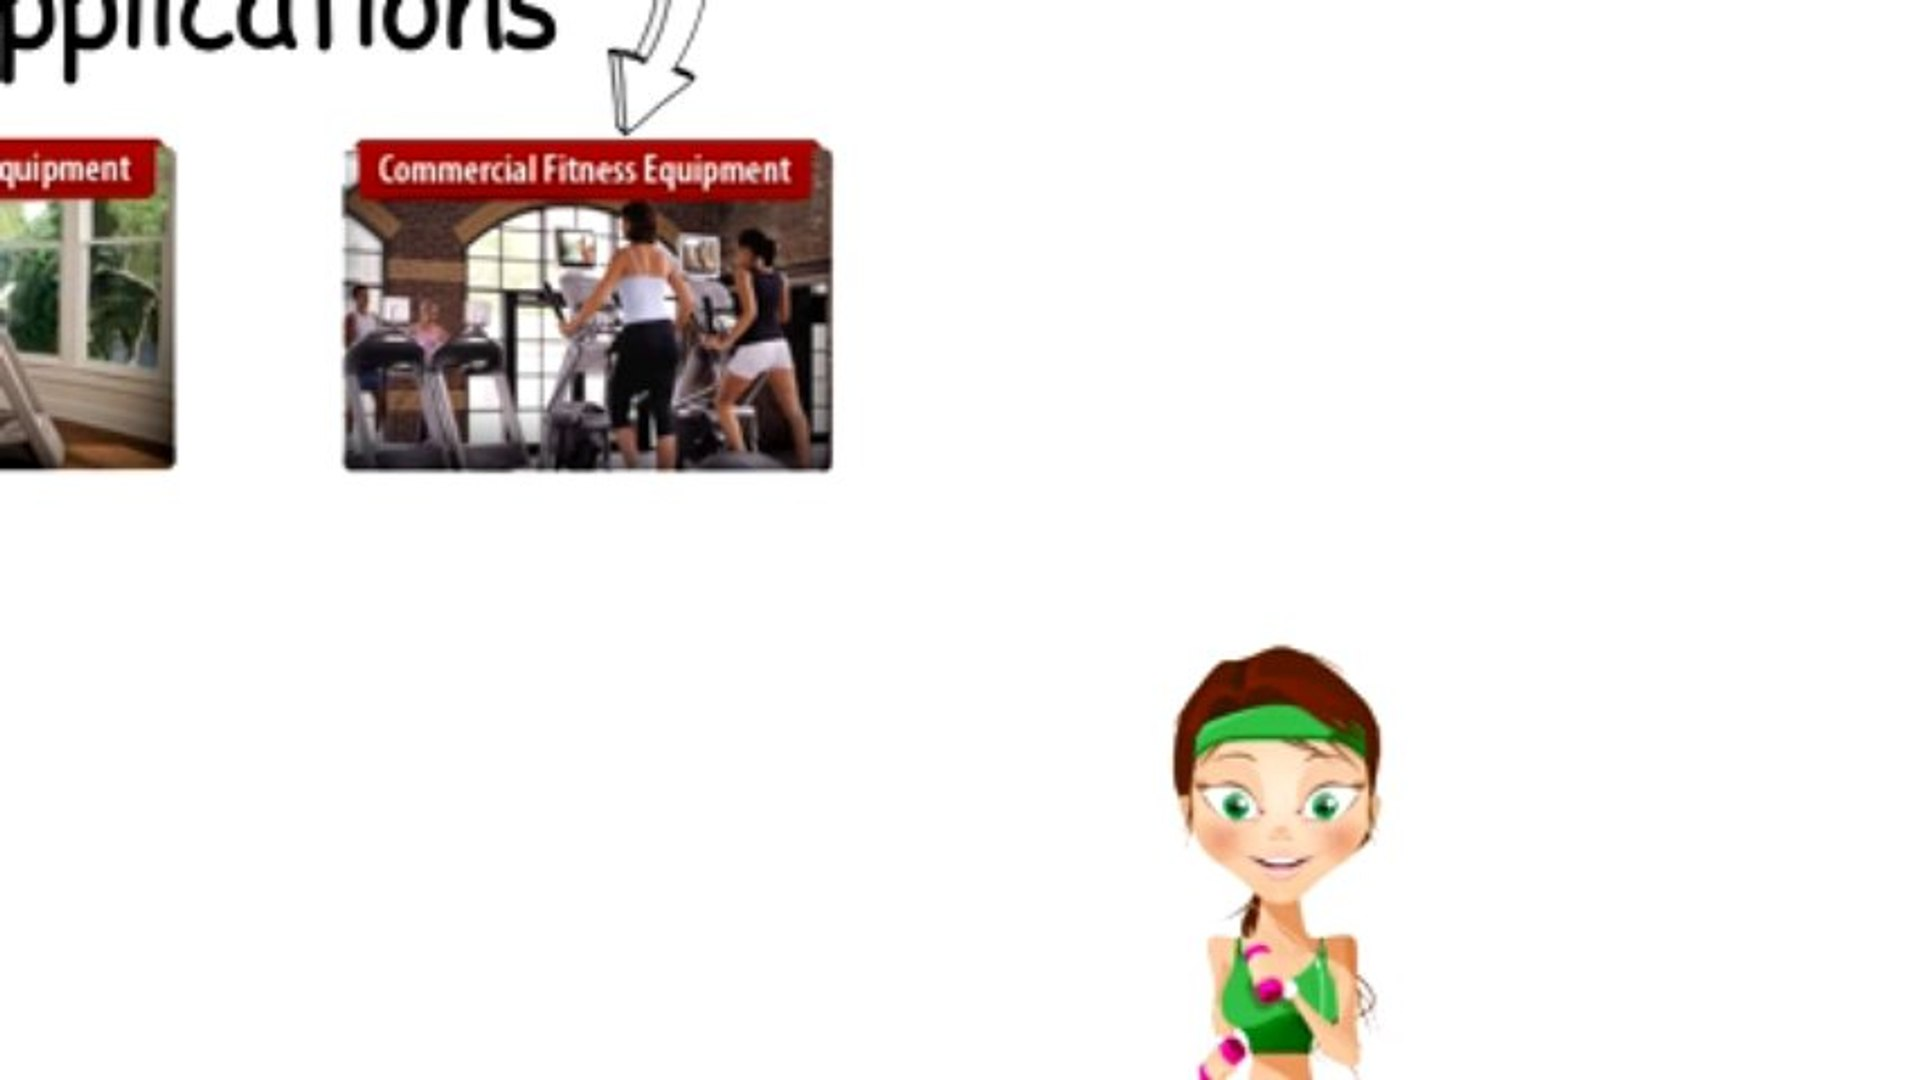 Fitness Equipment for Both Personal & Commercial Use